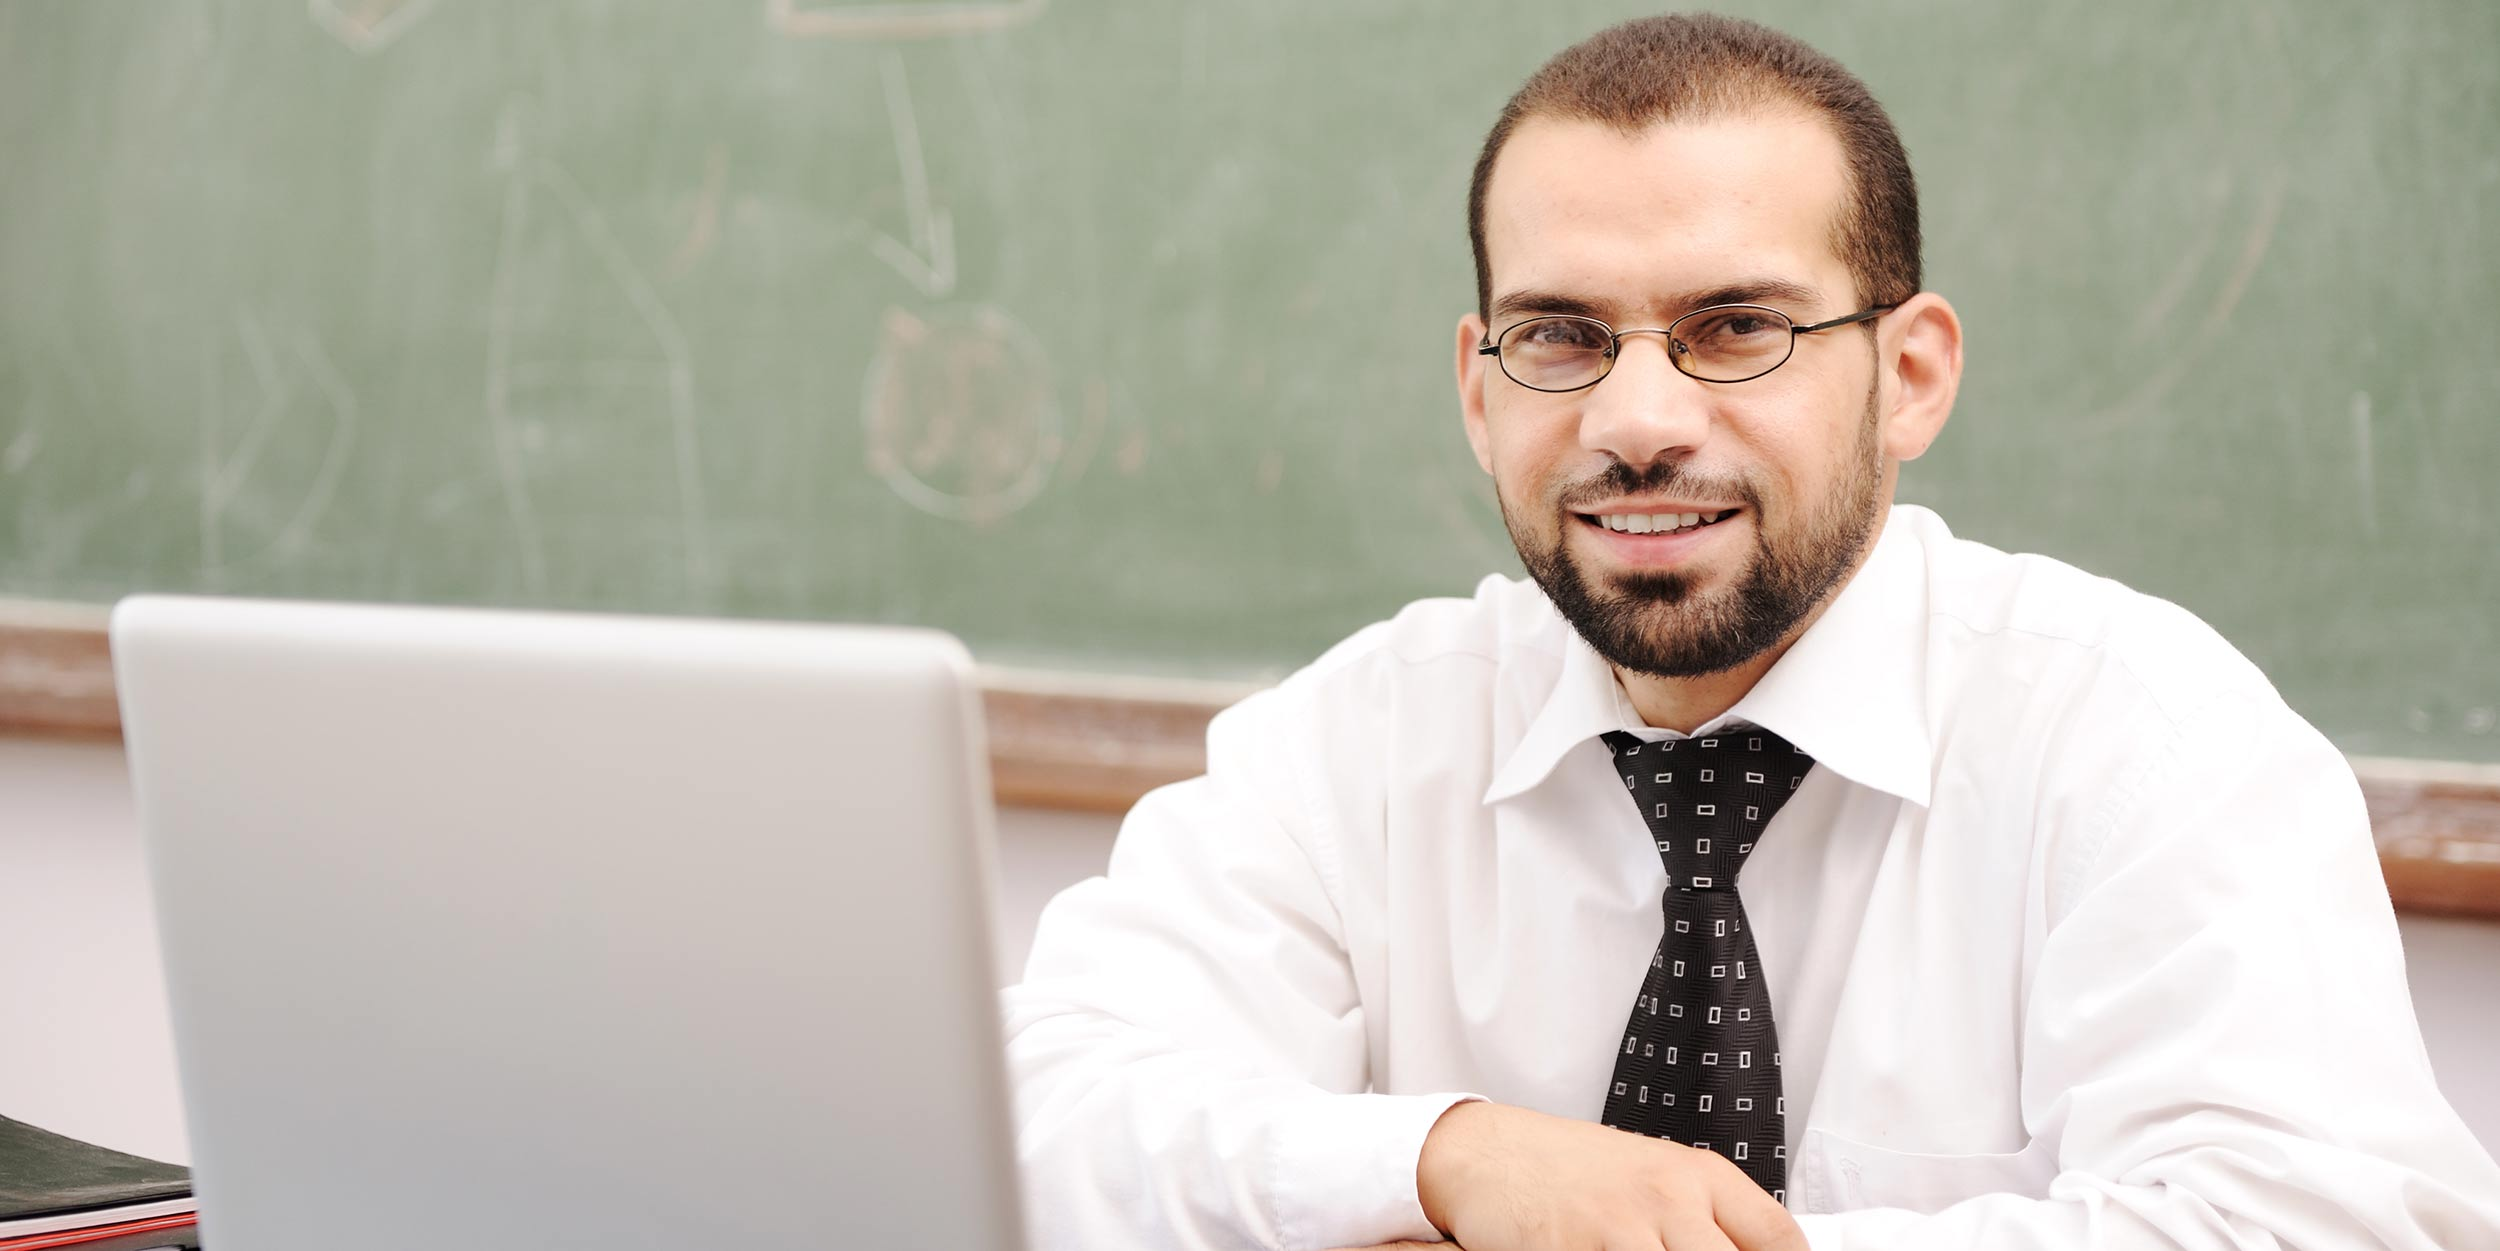 A man in a classroom sitting behind a laptop and smiling at the camera